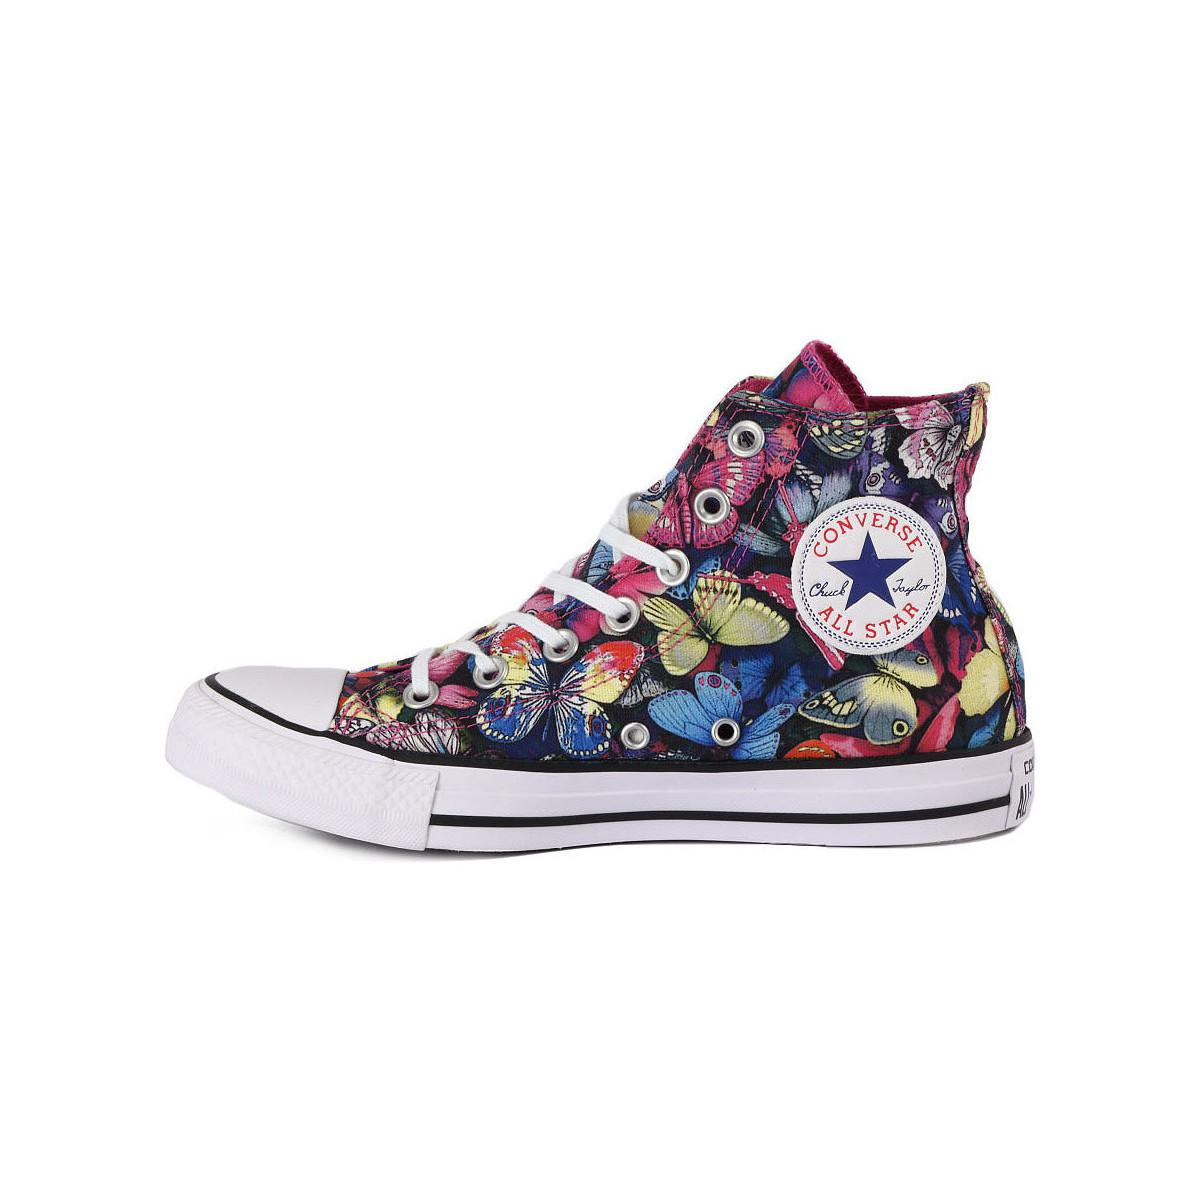 All Star Butterfly Hi Women's Shoes (high top Trainers) In Multicolour